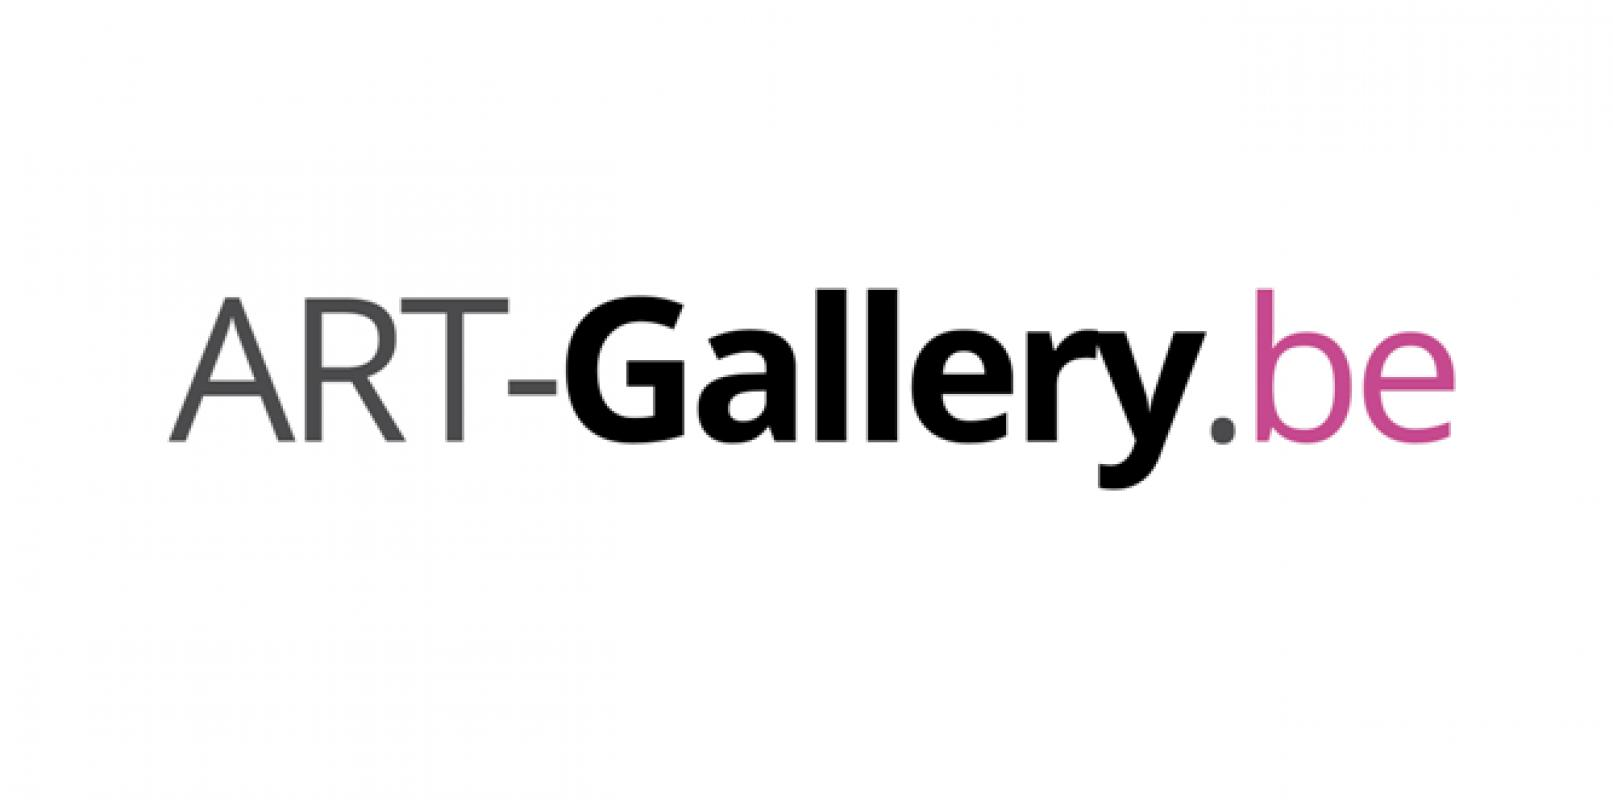 ART-Gallery.be